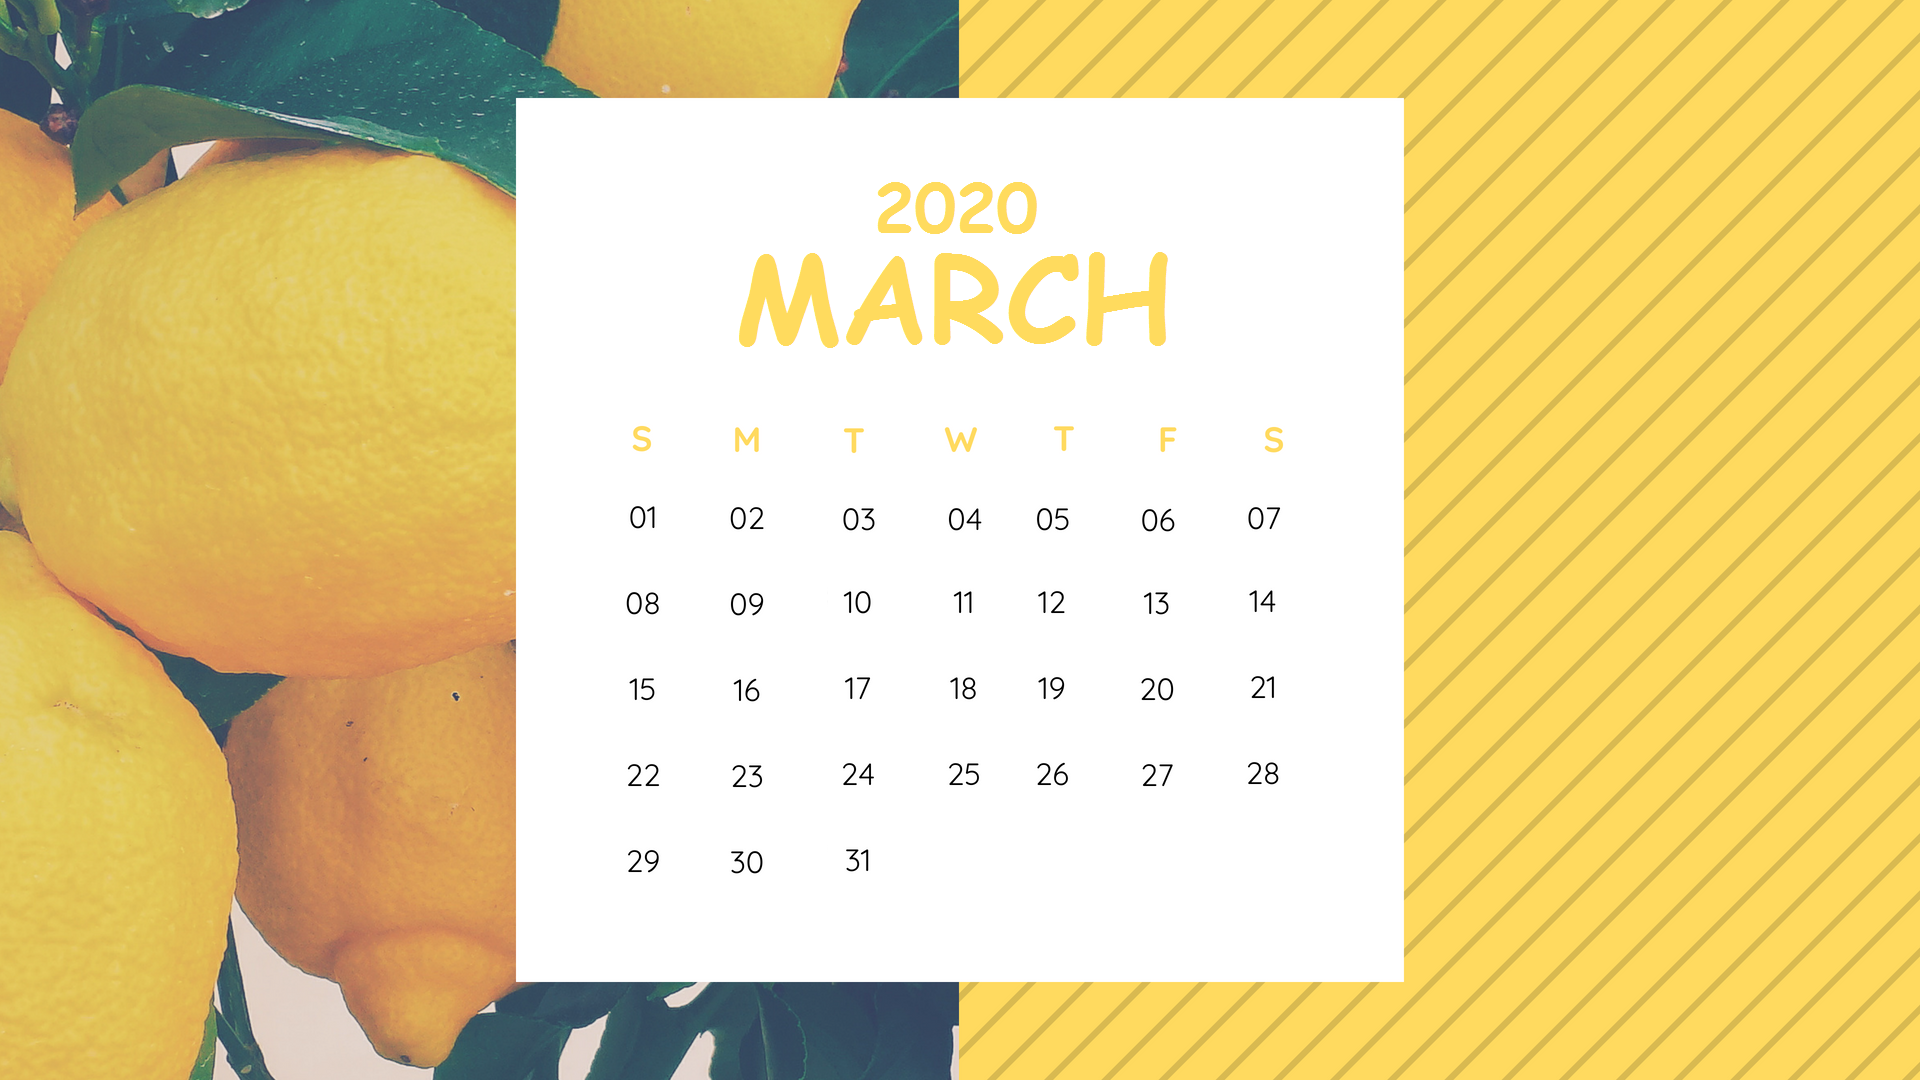 March 2020 Desktop Calendar Wallpaper